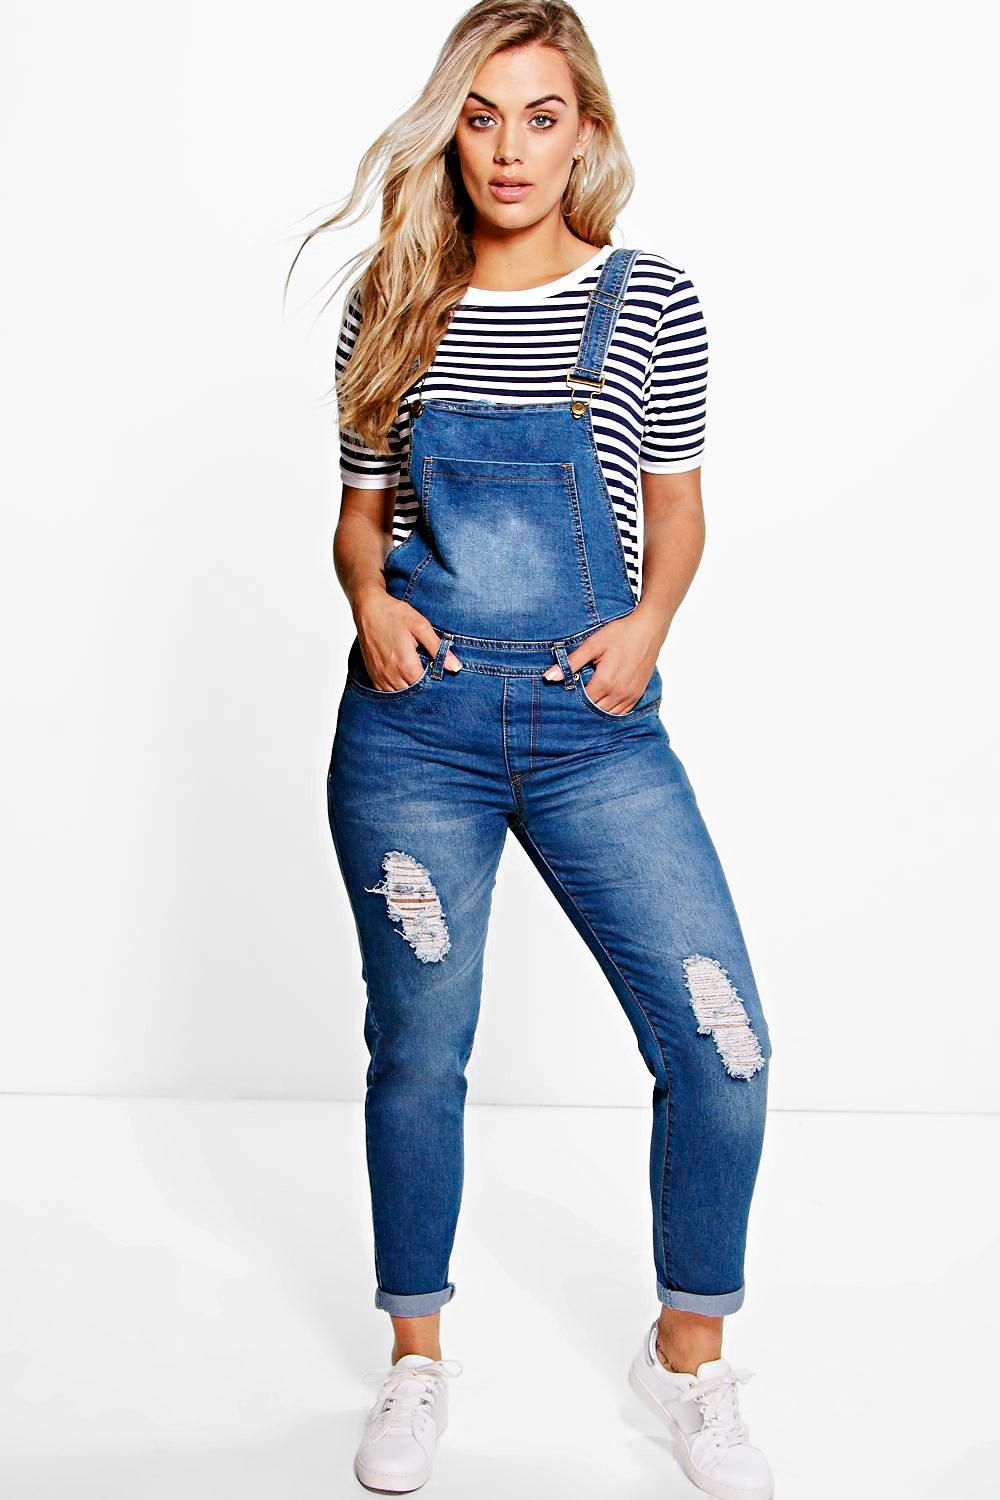 Find this Pin and more on Plus Size Dungarees & Denim Skirts by Dungarees-Online. Denim Skirts Online brings together a vast range of denim skirts for women of all ages and sizes. Our denim skirts range from sizes 8 to 22 and are ideal for any season.